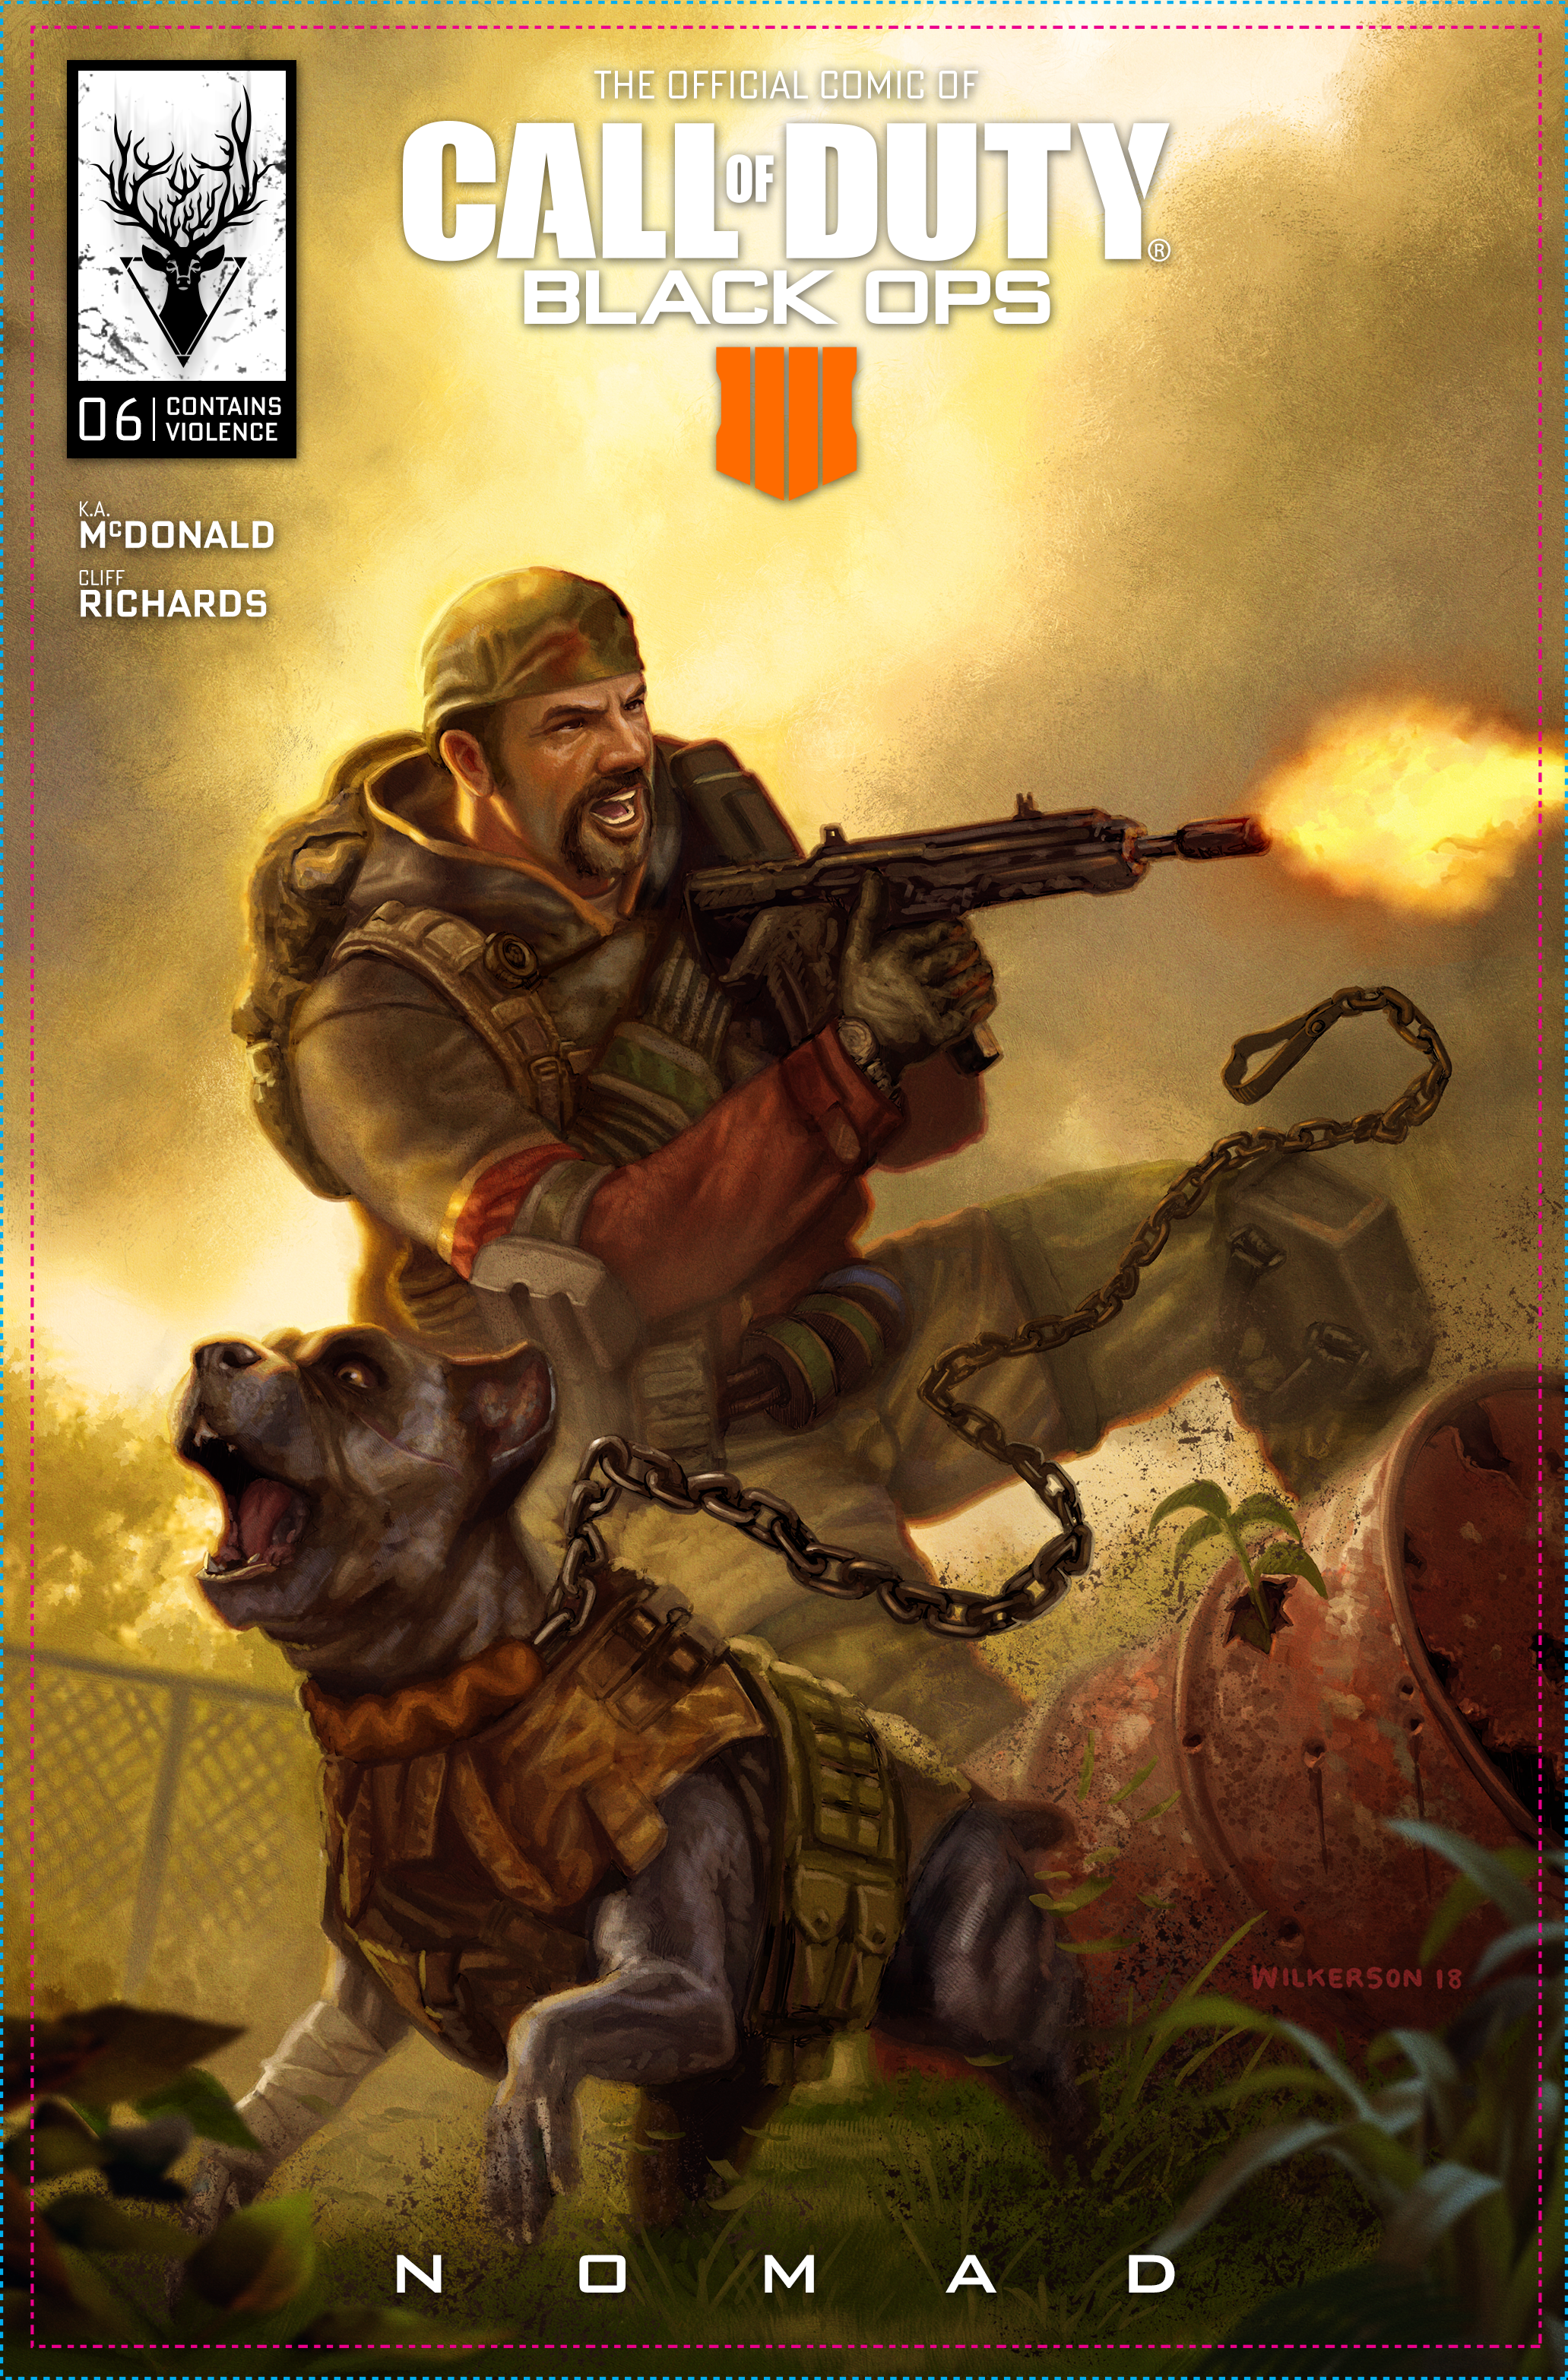 New Call Of Duty Black Ops 4 Artwork For 2018 2019 See Cod 4 Videos Here Https Www Youtube Com Playlist List Plt Call Of Duty Black Black Ops 4 Black Ops